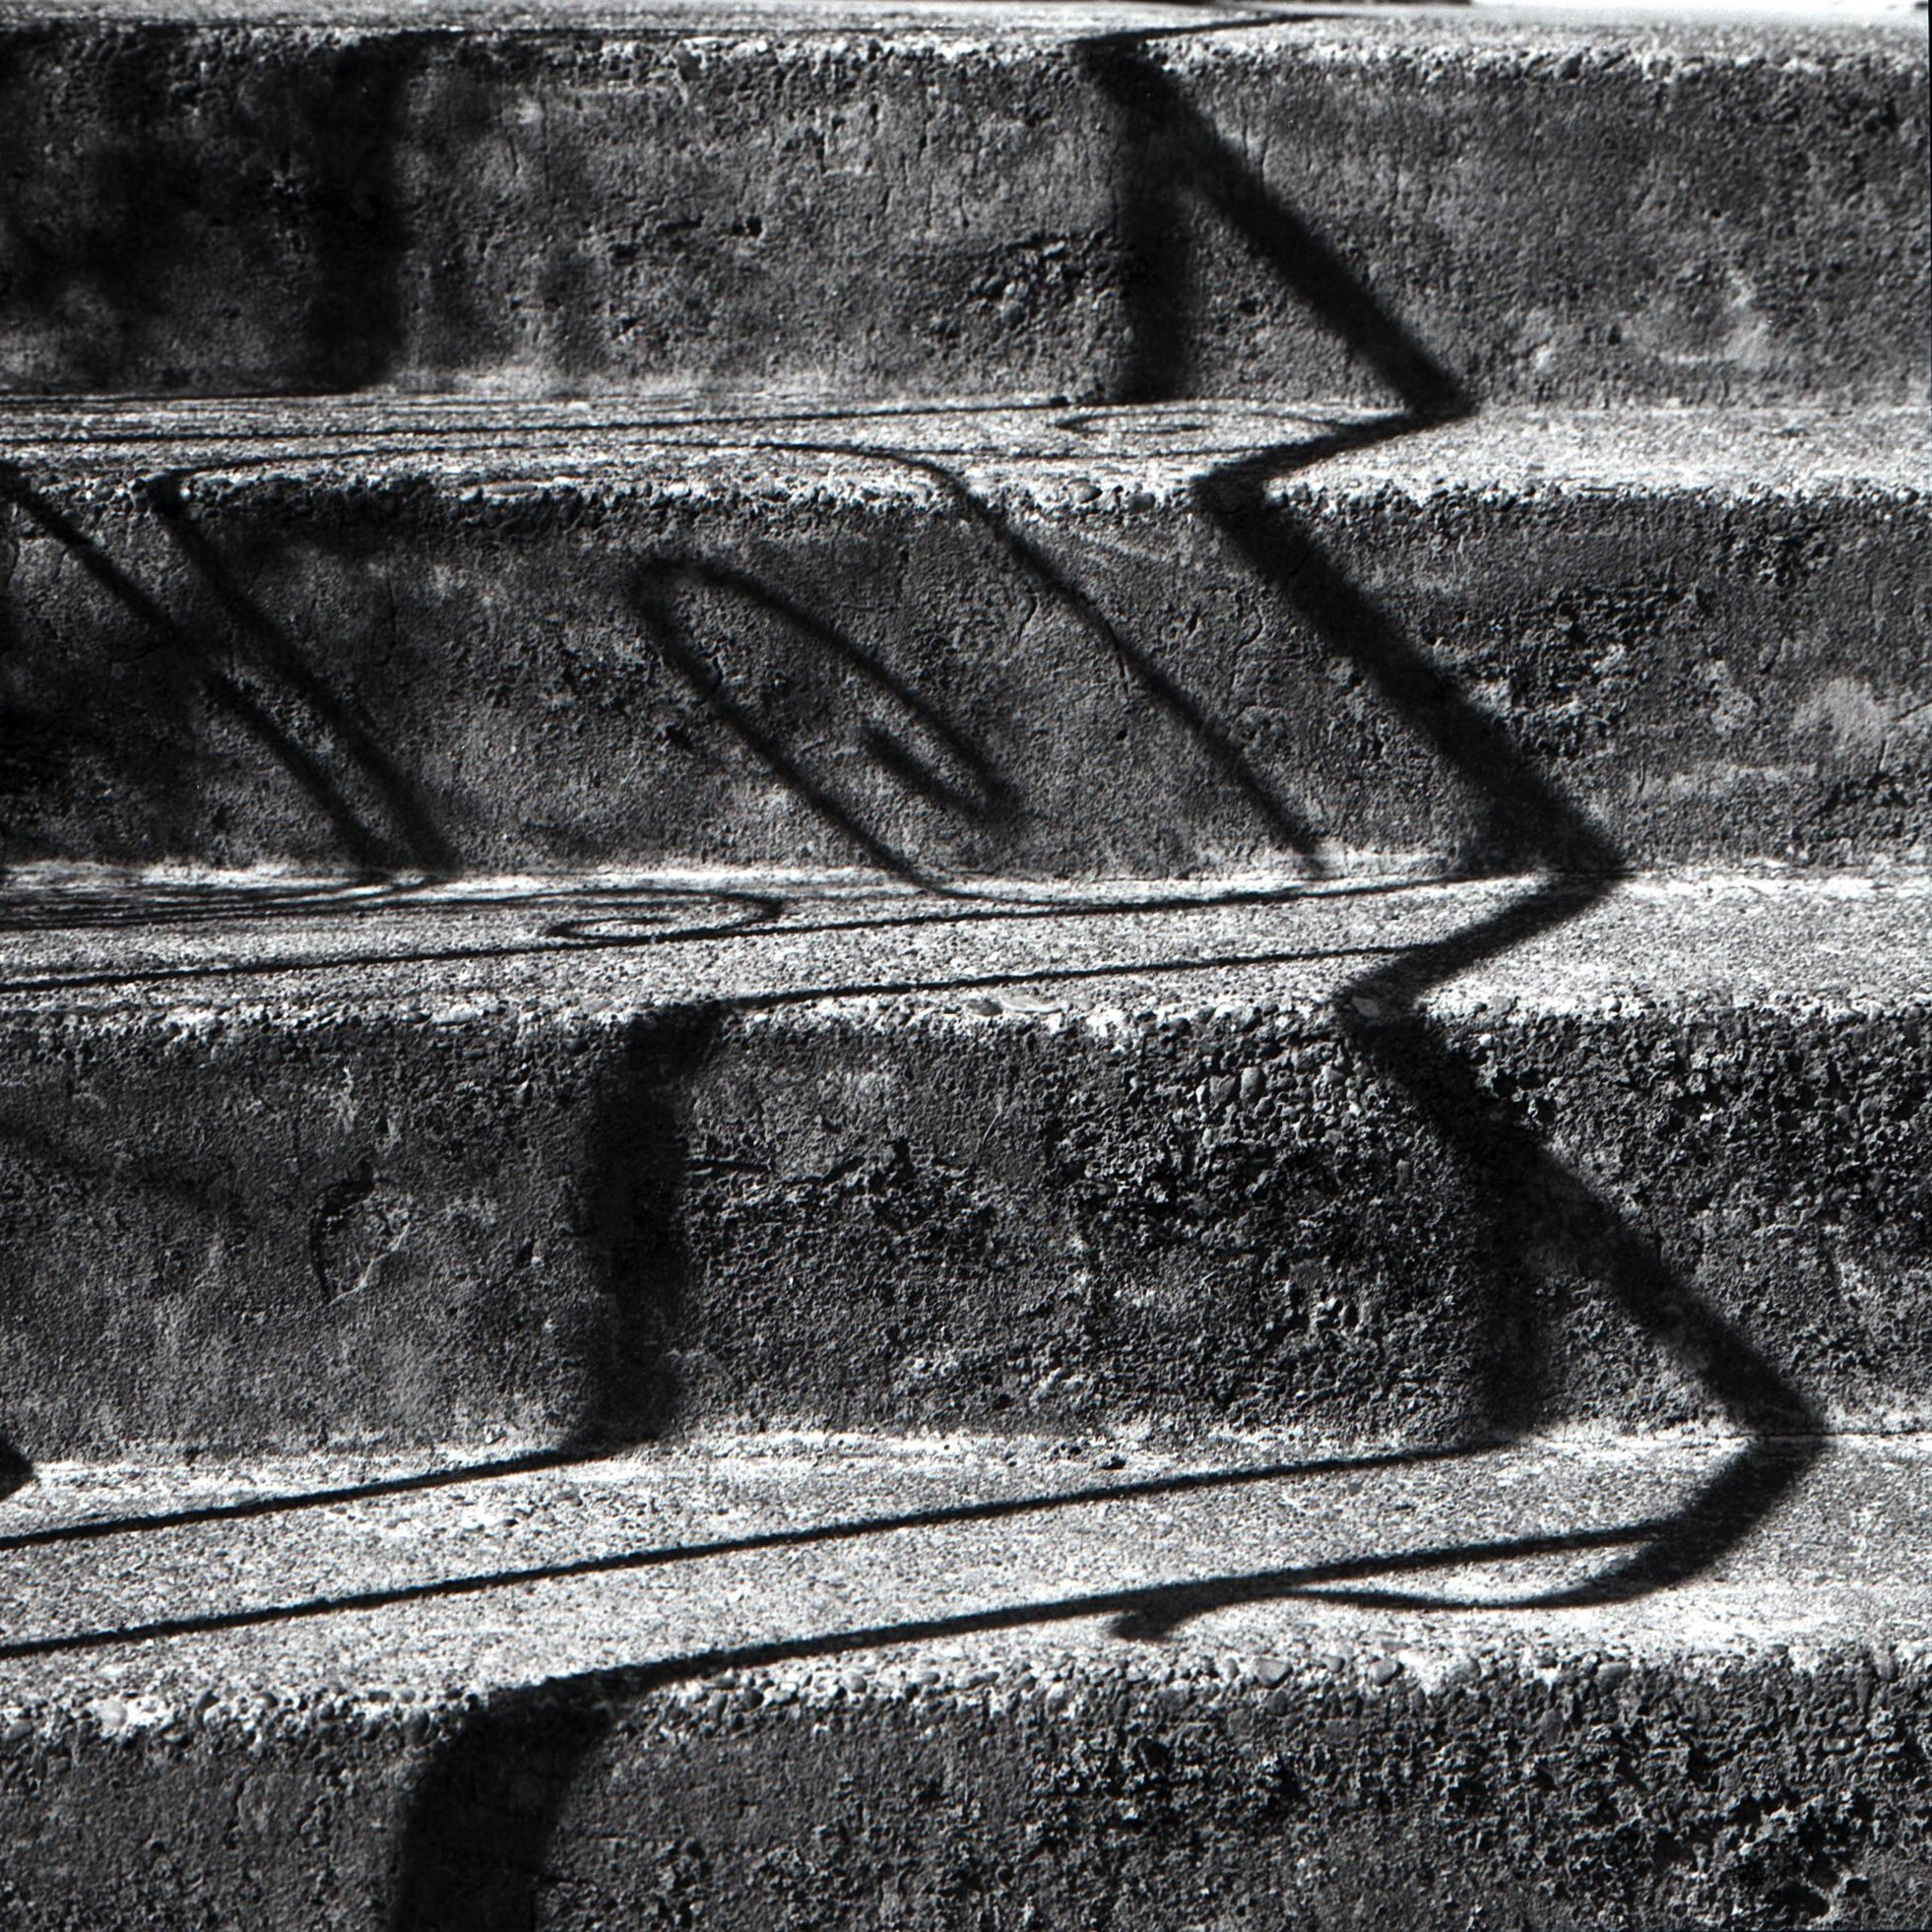 Zig zag with curlicue @ILFORDPhoto FP4+ | Bronica SQ-a #ilfordphoto #fridayfavourites #lines